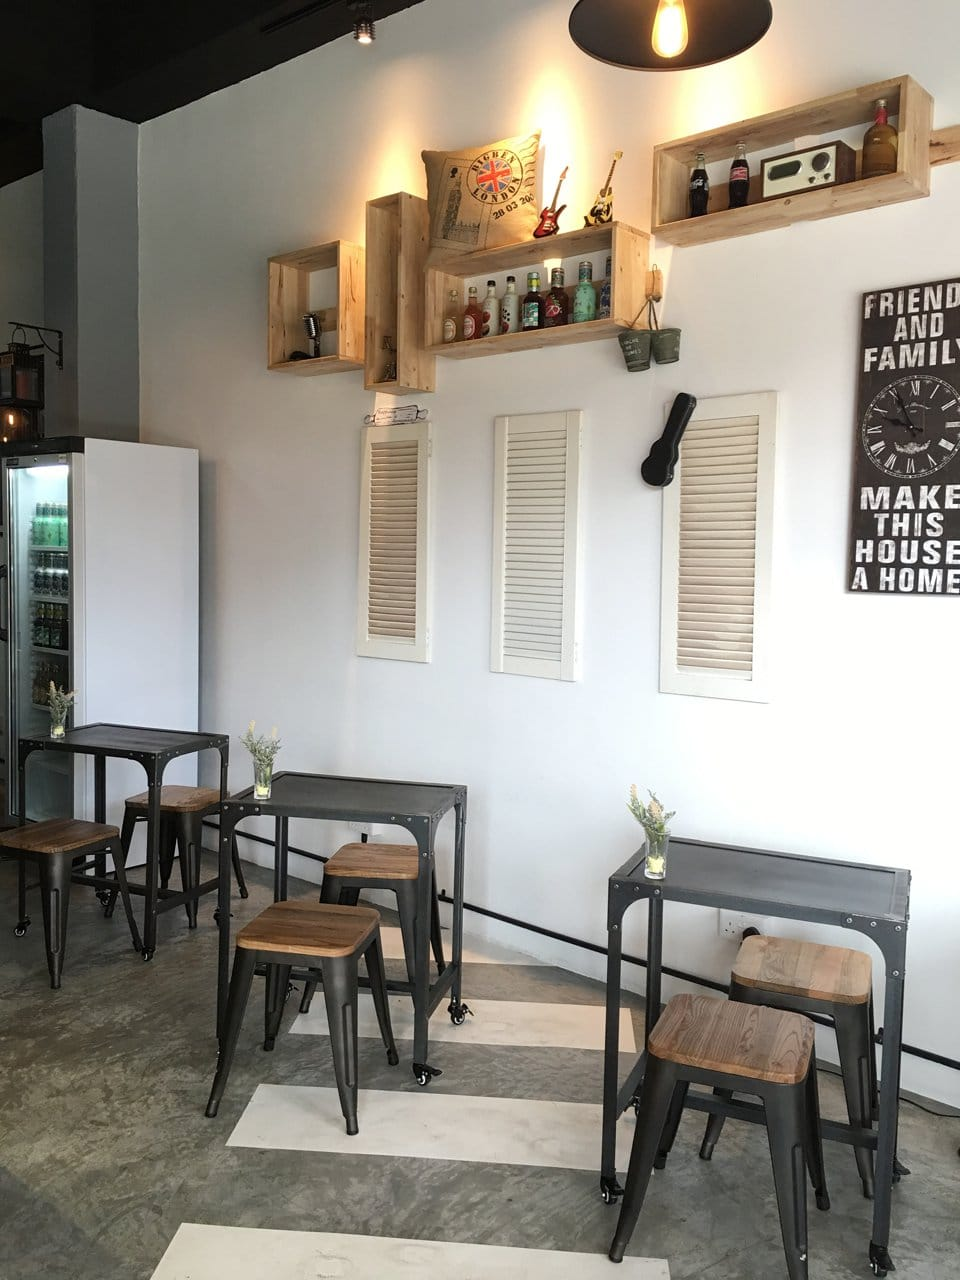 Abbey Bakery - Siglap | Products Seen: [Dojo Low Stool, Aziz Wall Shelves - 3 Rectangles & Aziz Wall Shelves - 3 Squares]<br />